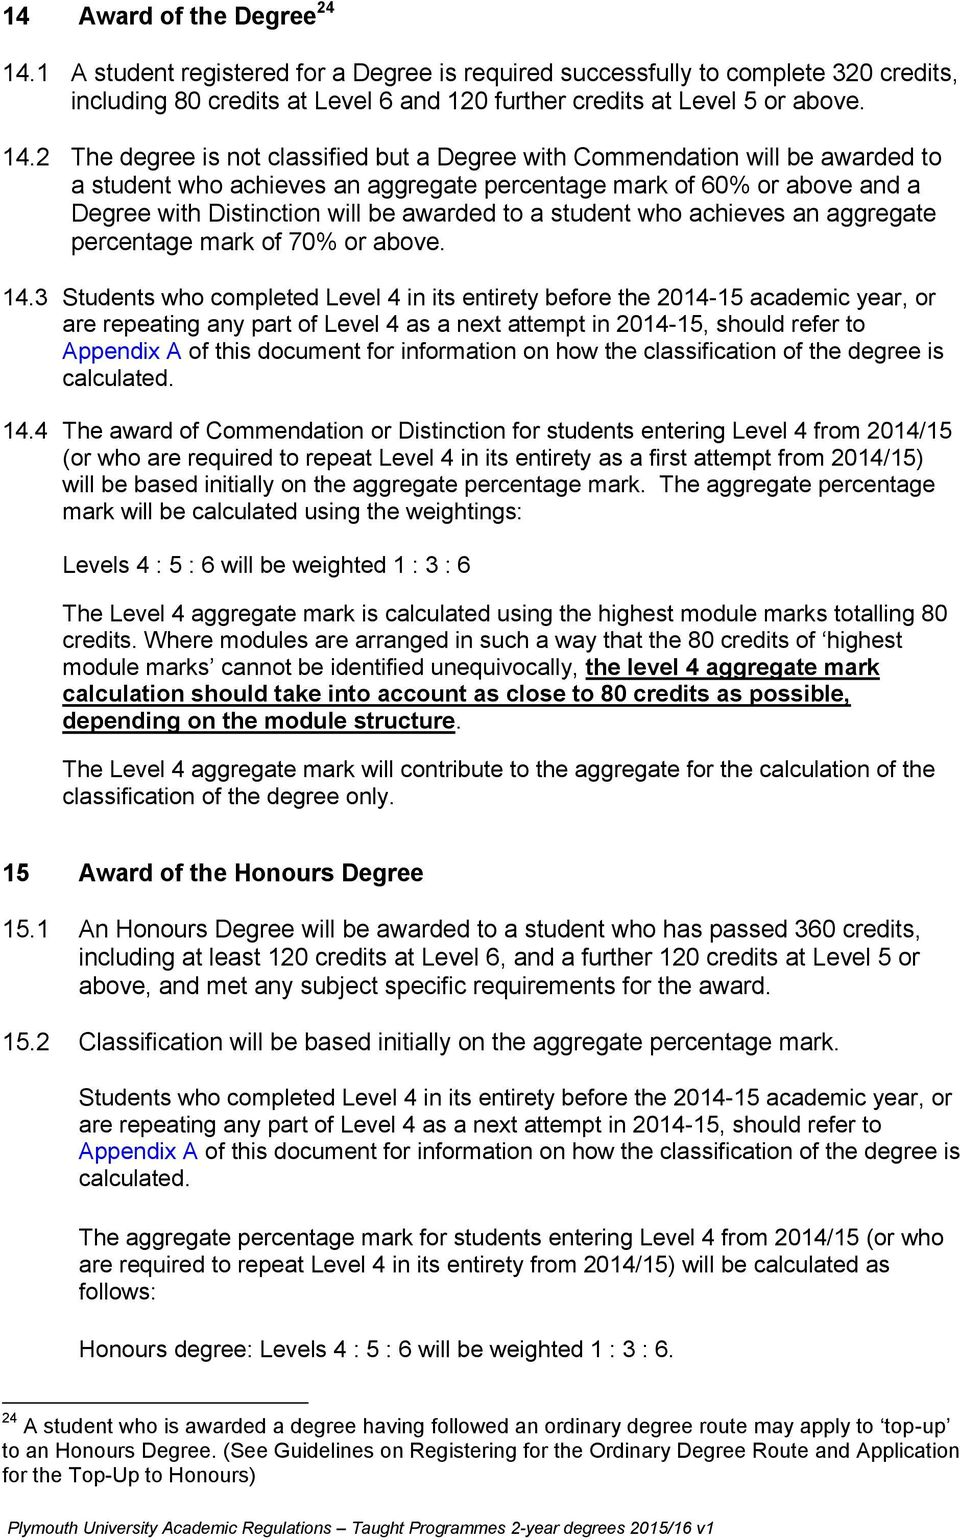 2 The degree is not classified but a Degree with Commendation will be awarded to a student who achieves an aggregate percentage mark of 60% or above and a Degree with Distinction will be awarded to a